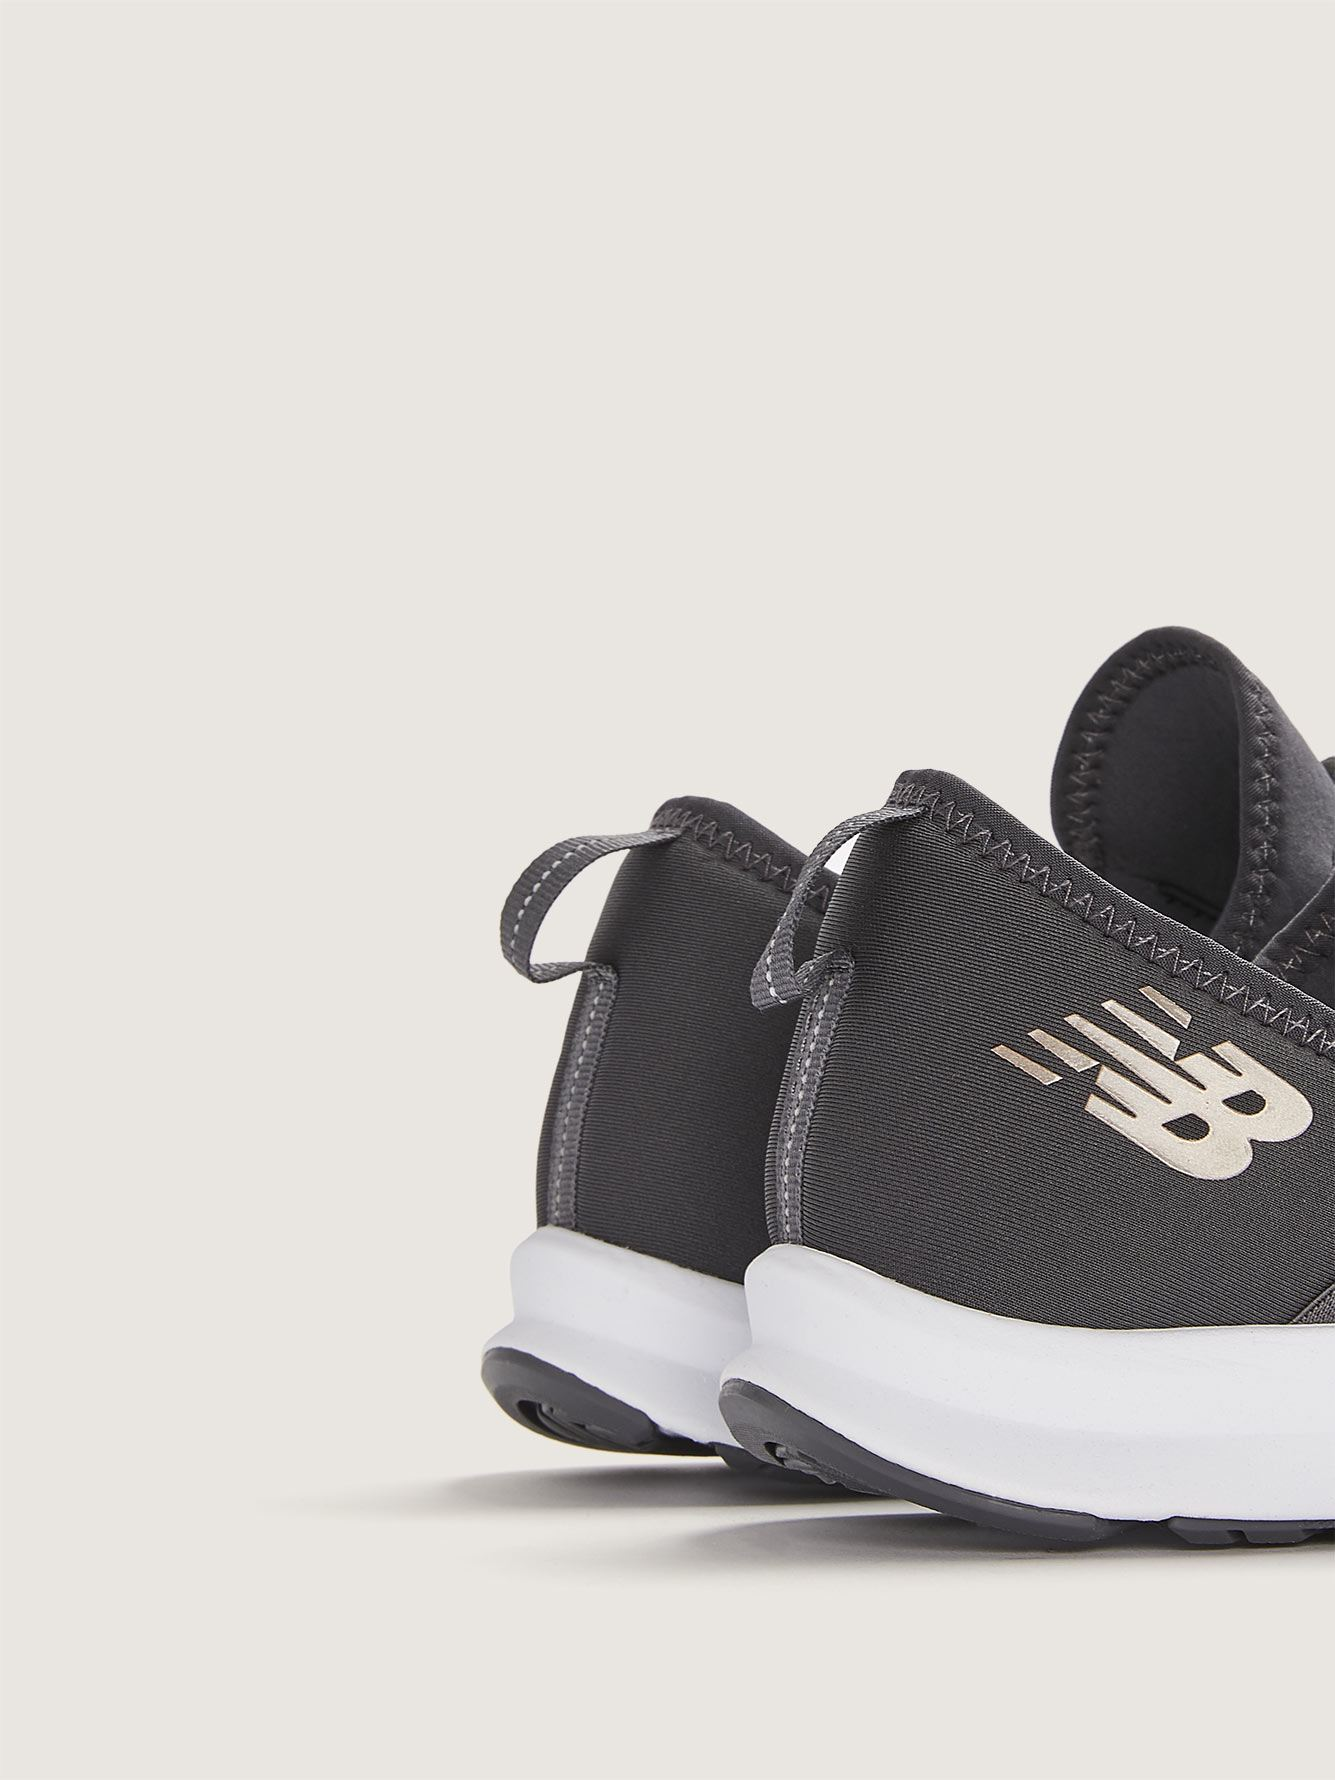 Wide Width Fuelcore Nergize Sneakers - New Balance